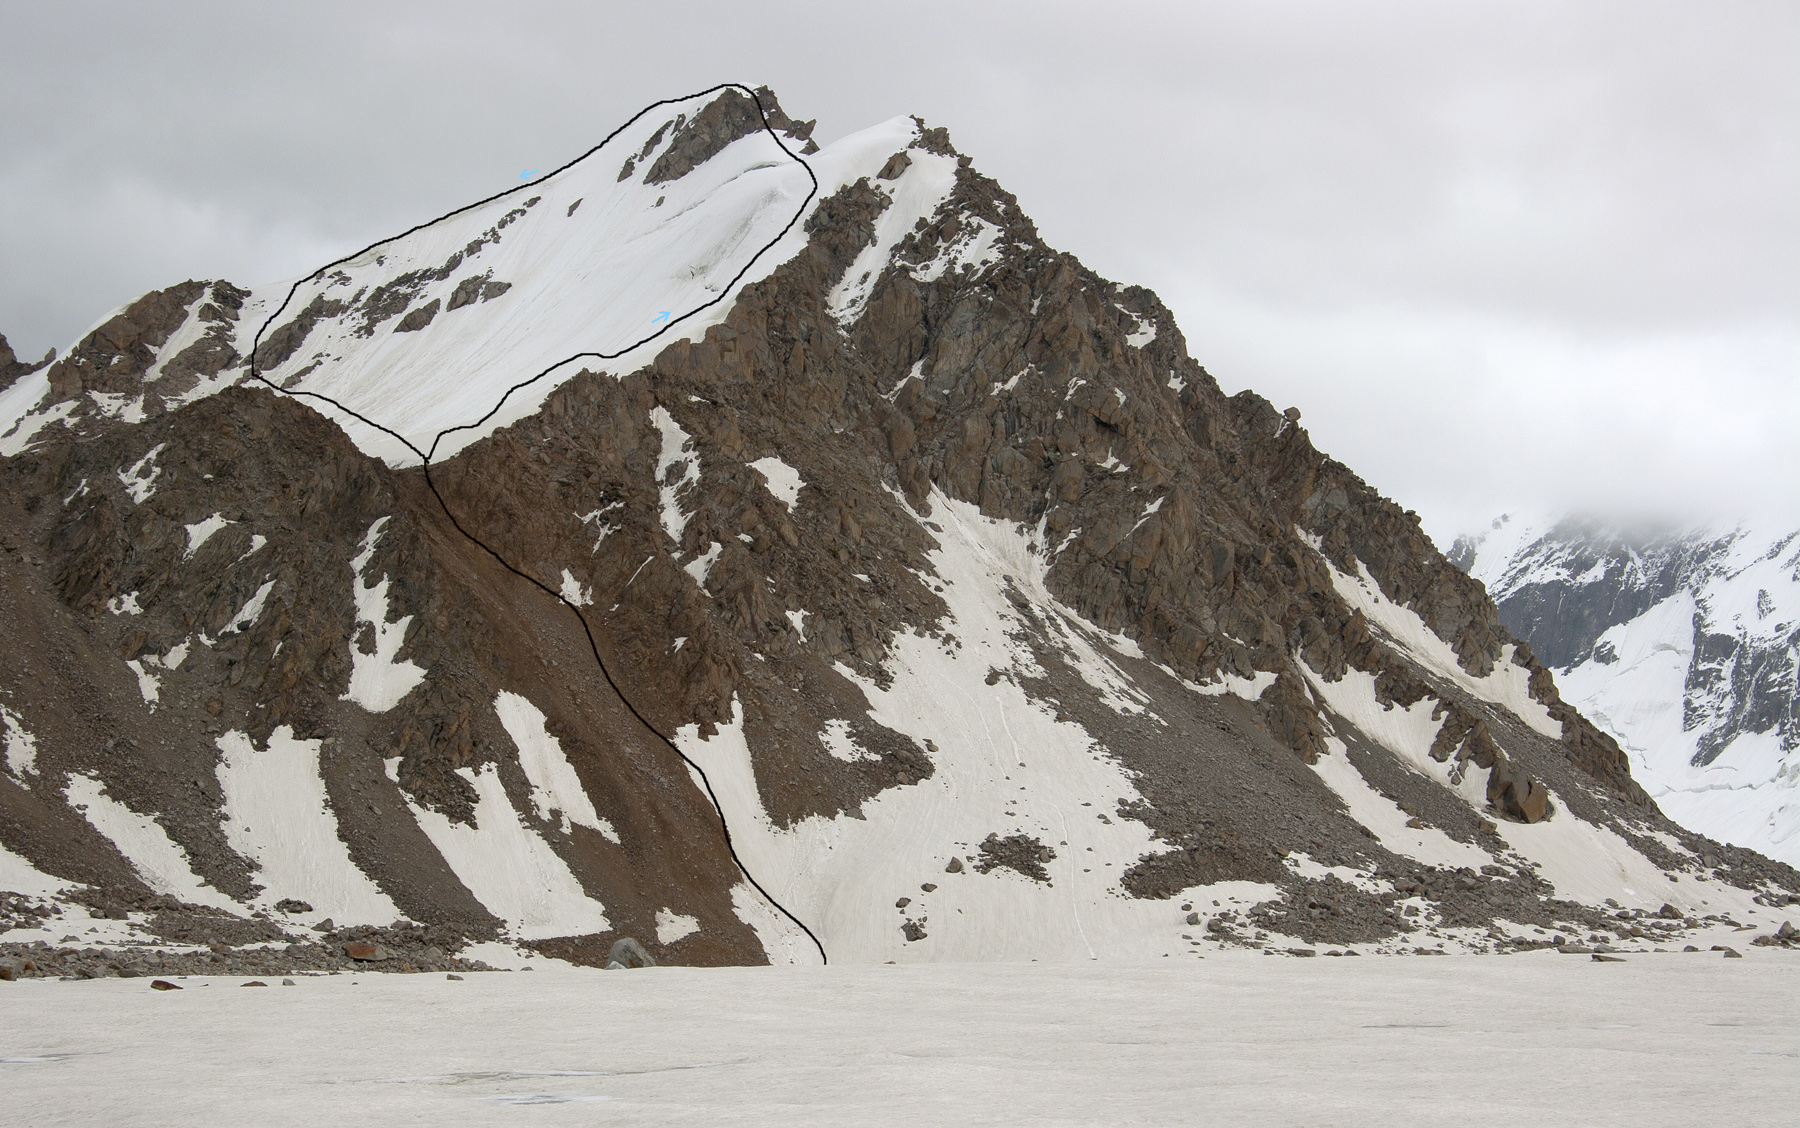 Koh-e-Hoppa on the east side of Qala-i-Hurst Glacier, showing route of first ascent. The mountain was traversed from right to left.